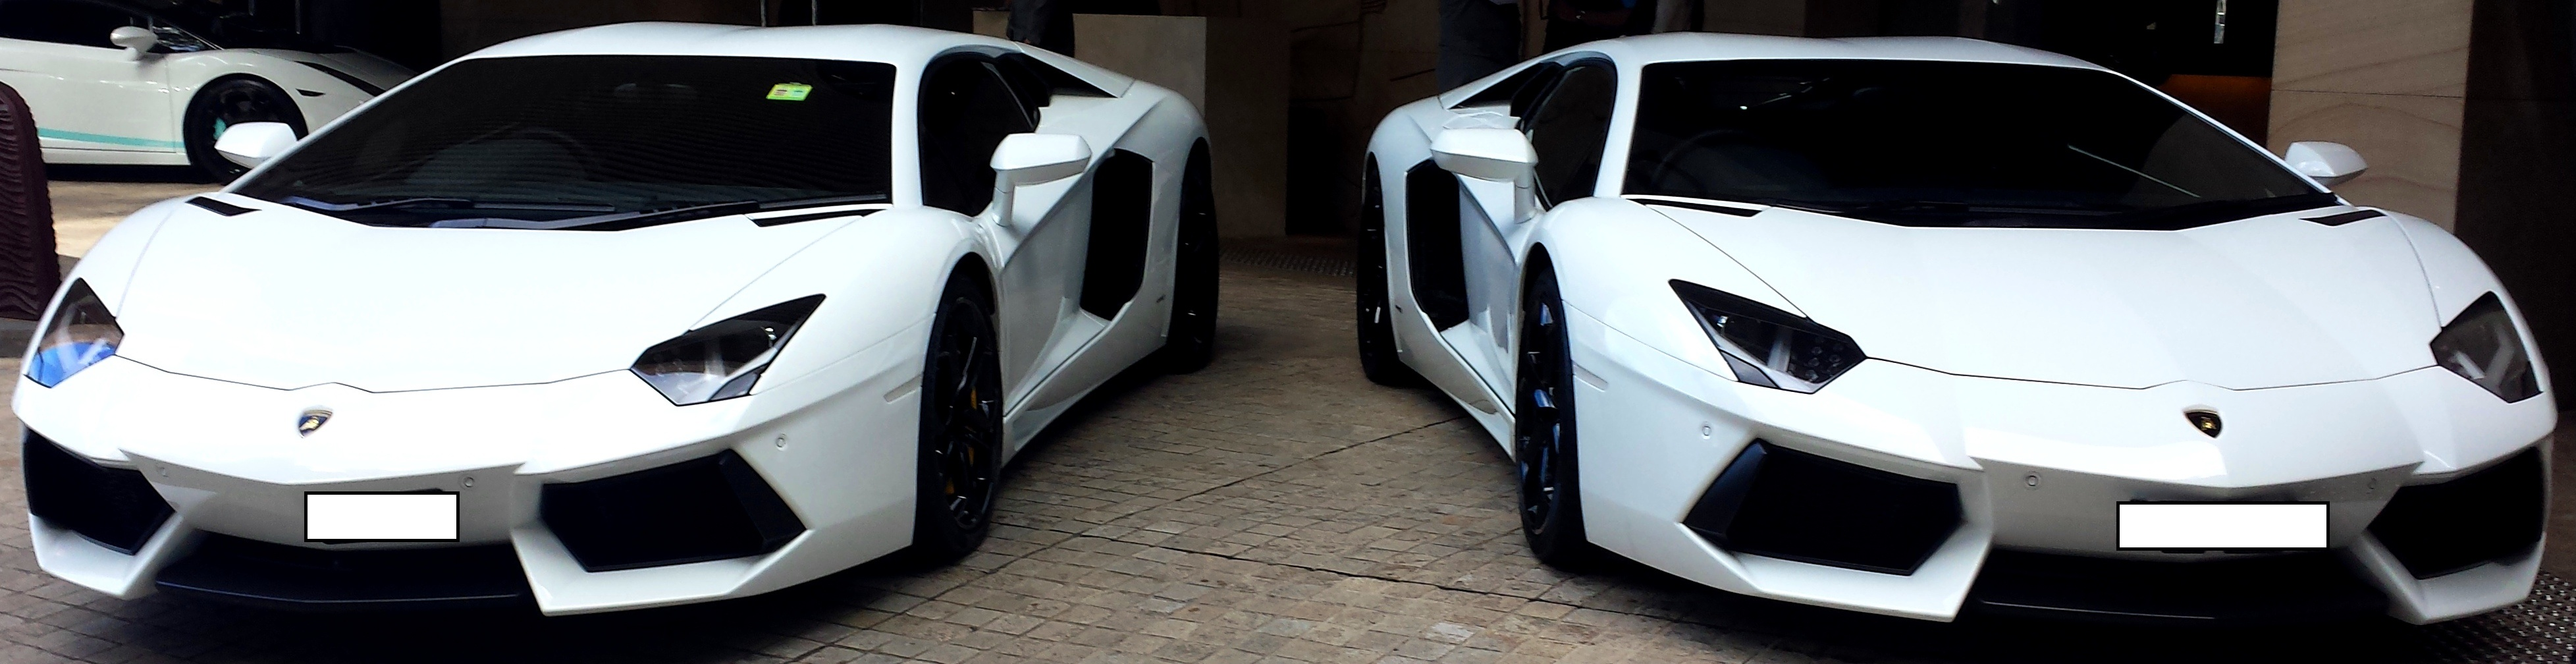 Lamborghini Hire in Sydney | Deblanco